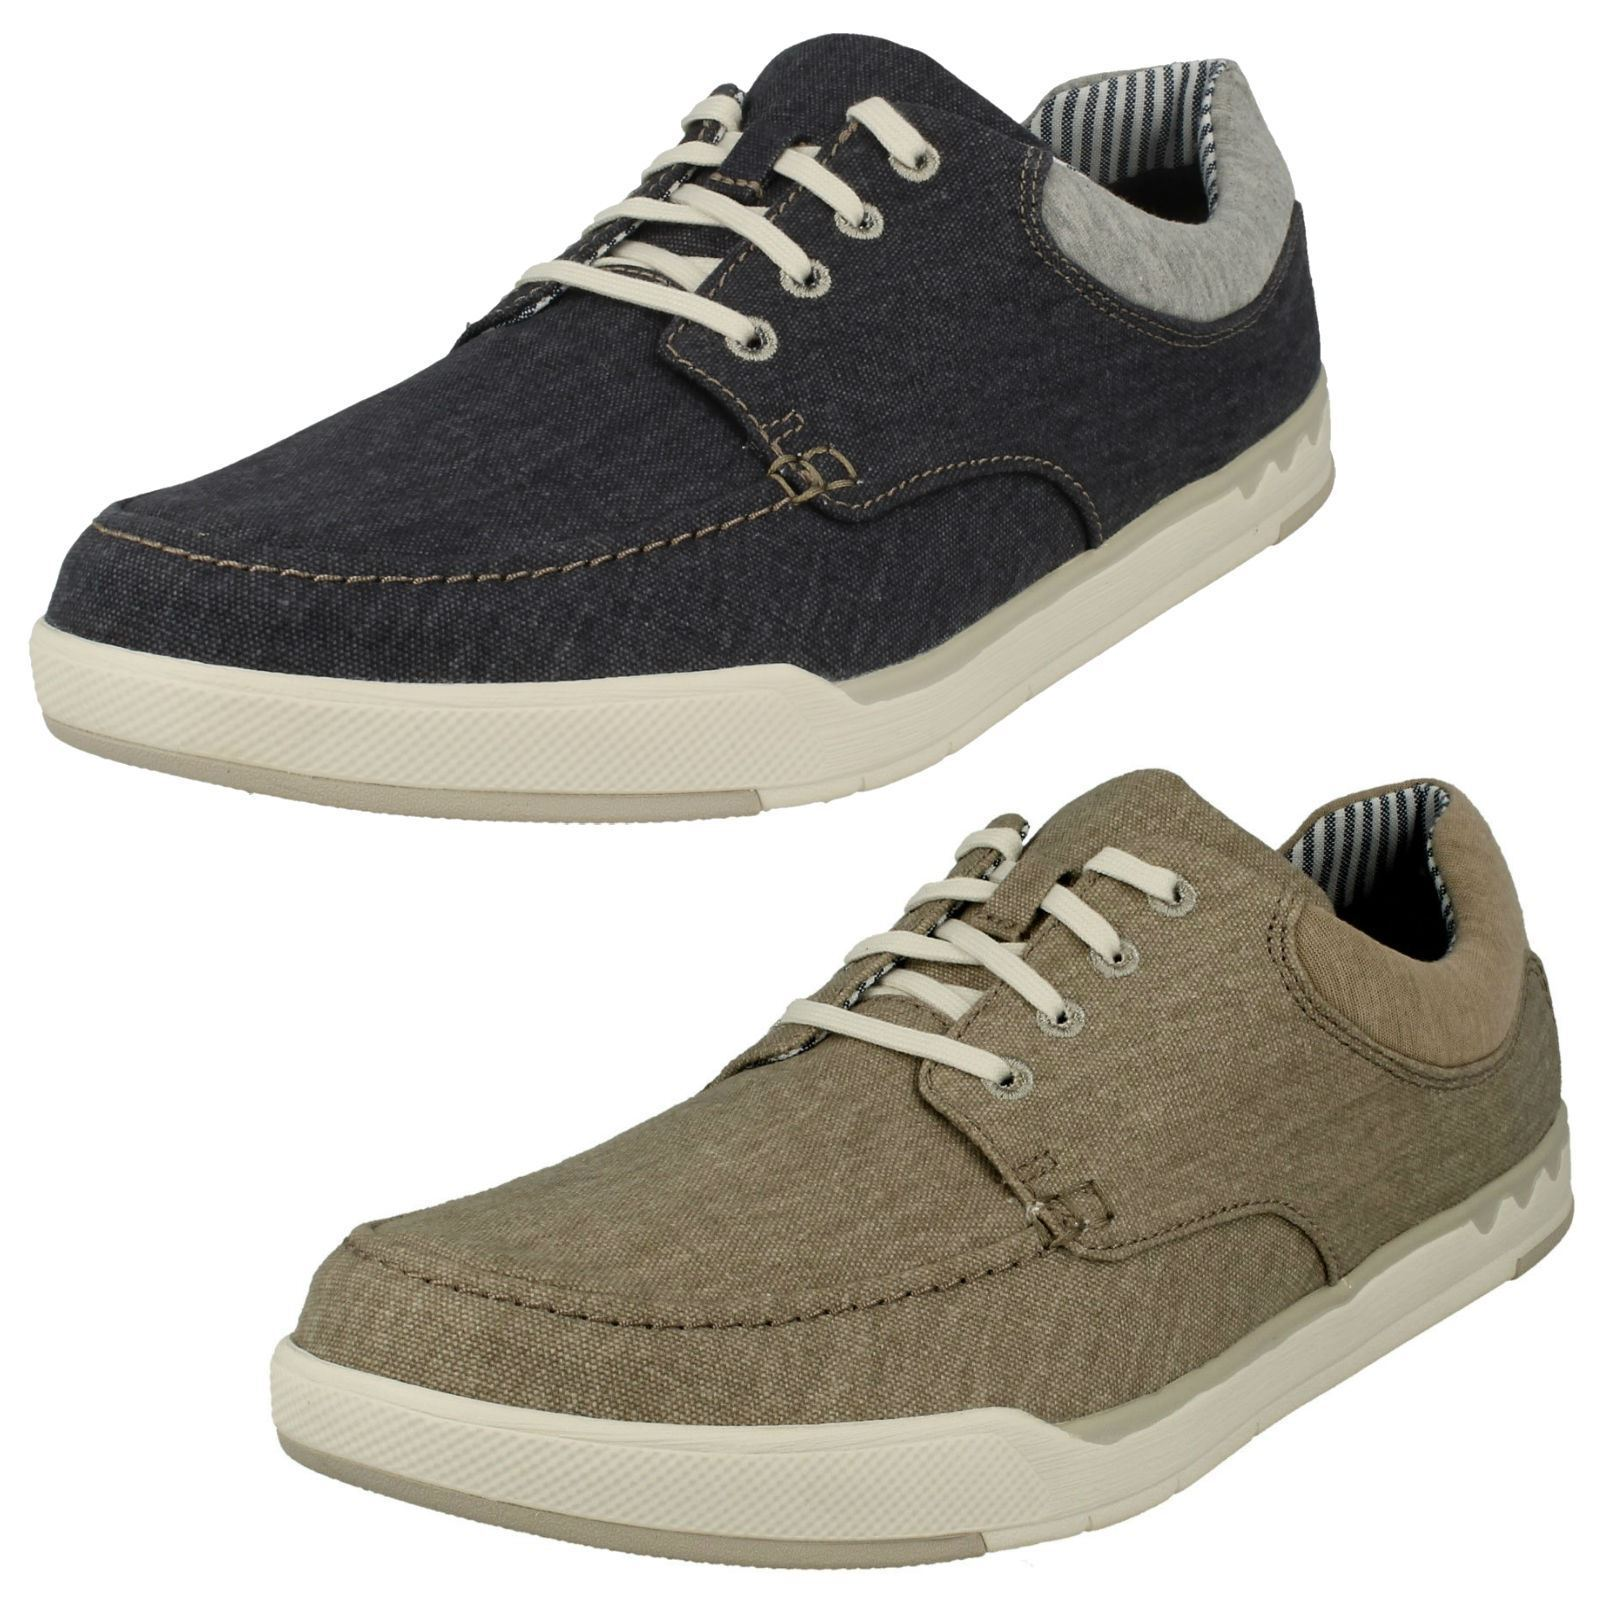 Mens Clarks Casual Lace Up shoes - Step Isle Lace